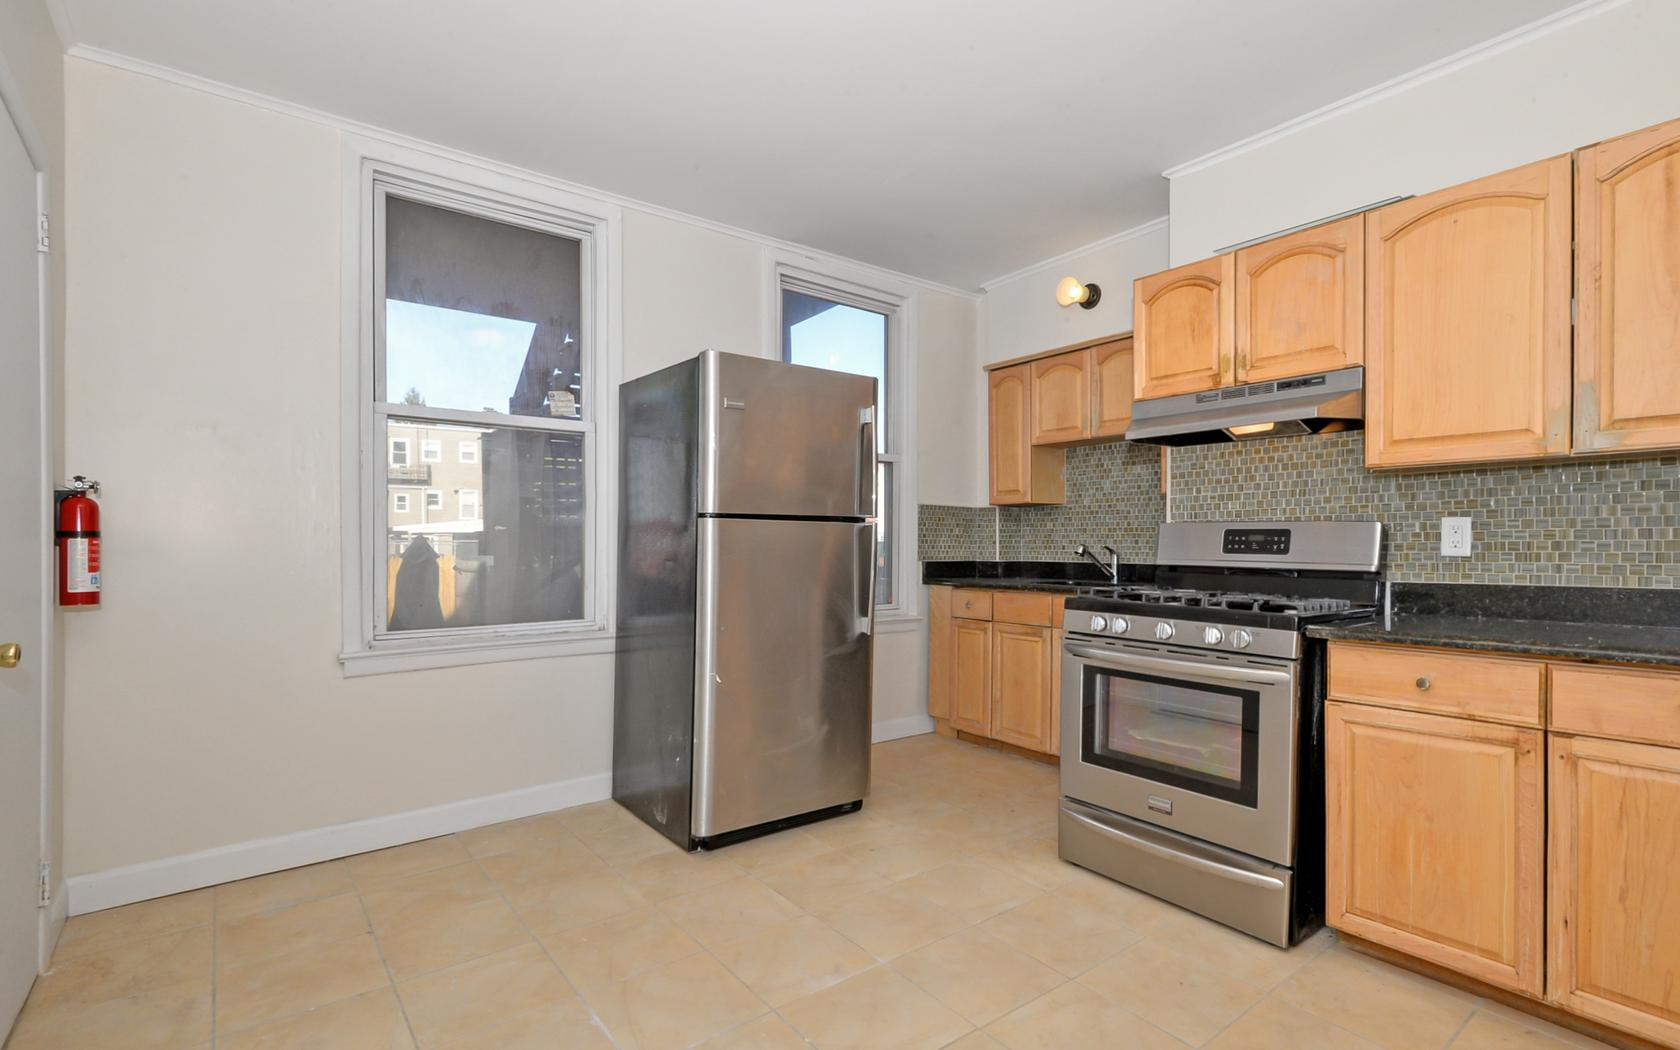 多户住宅 为 销售 在 Spacious Two Family Home 19 West 9th Street Bayonne, 07002 美国